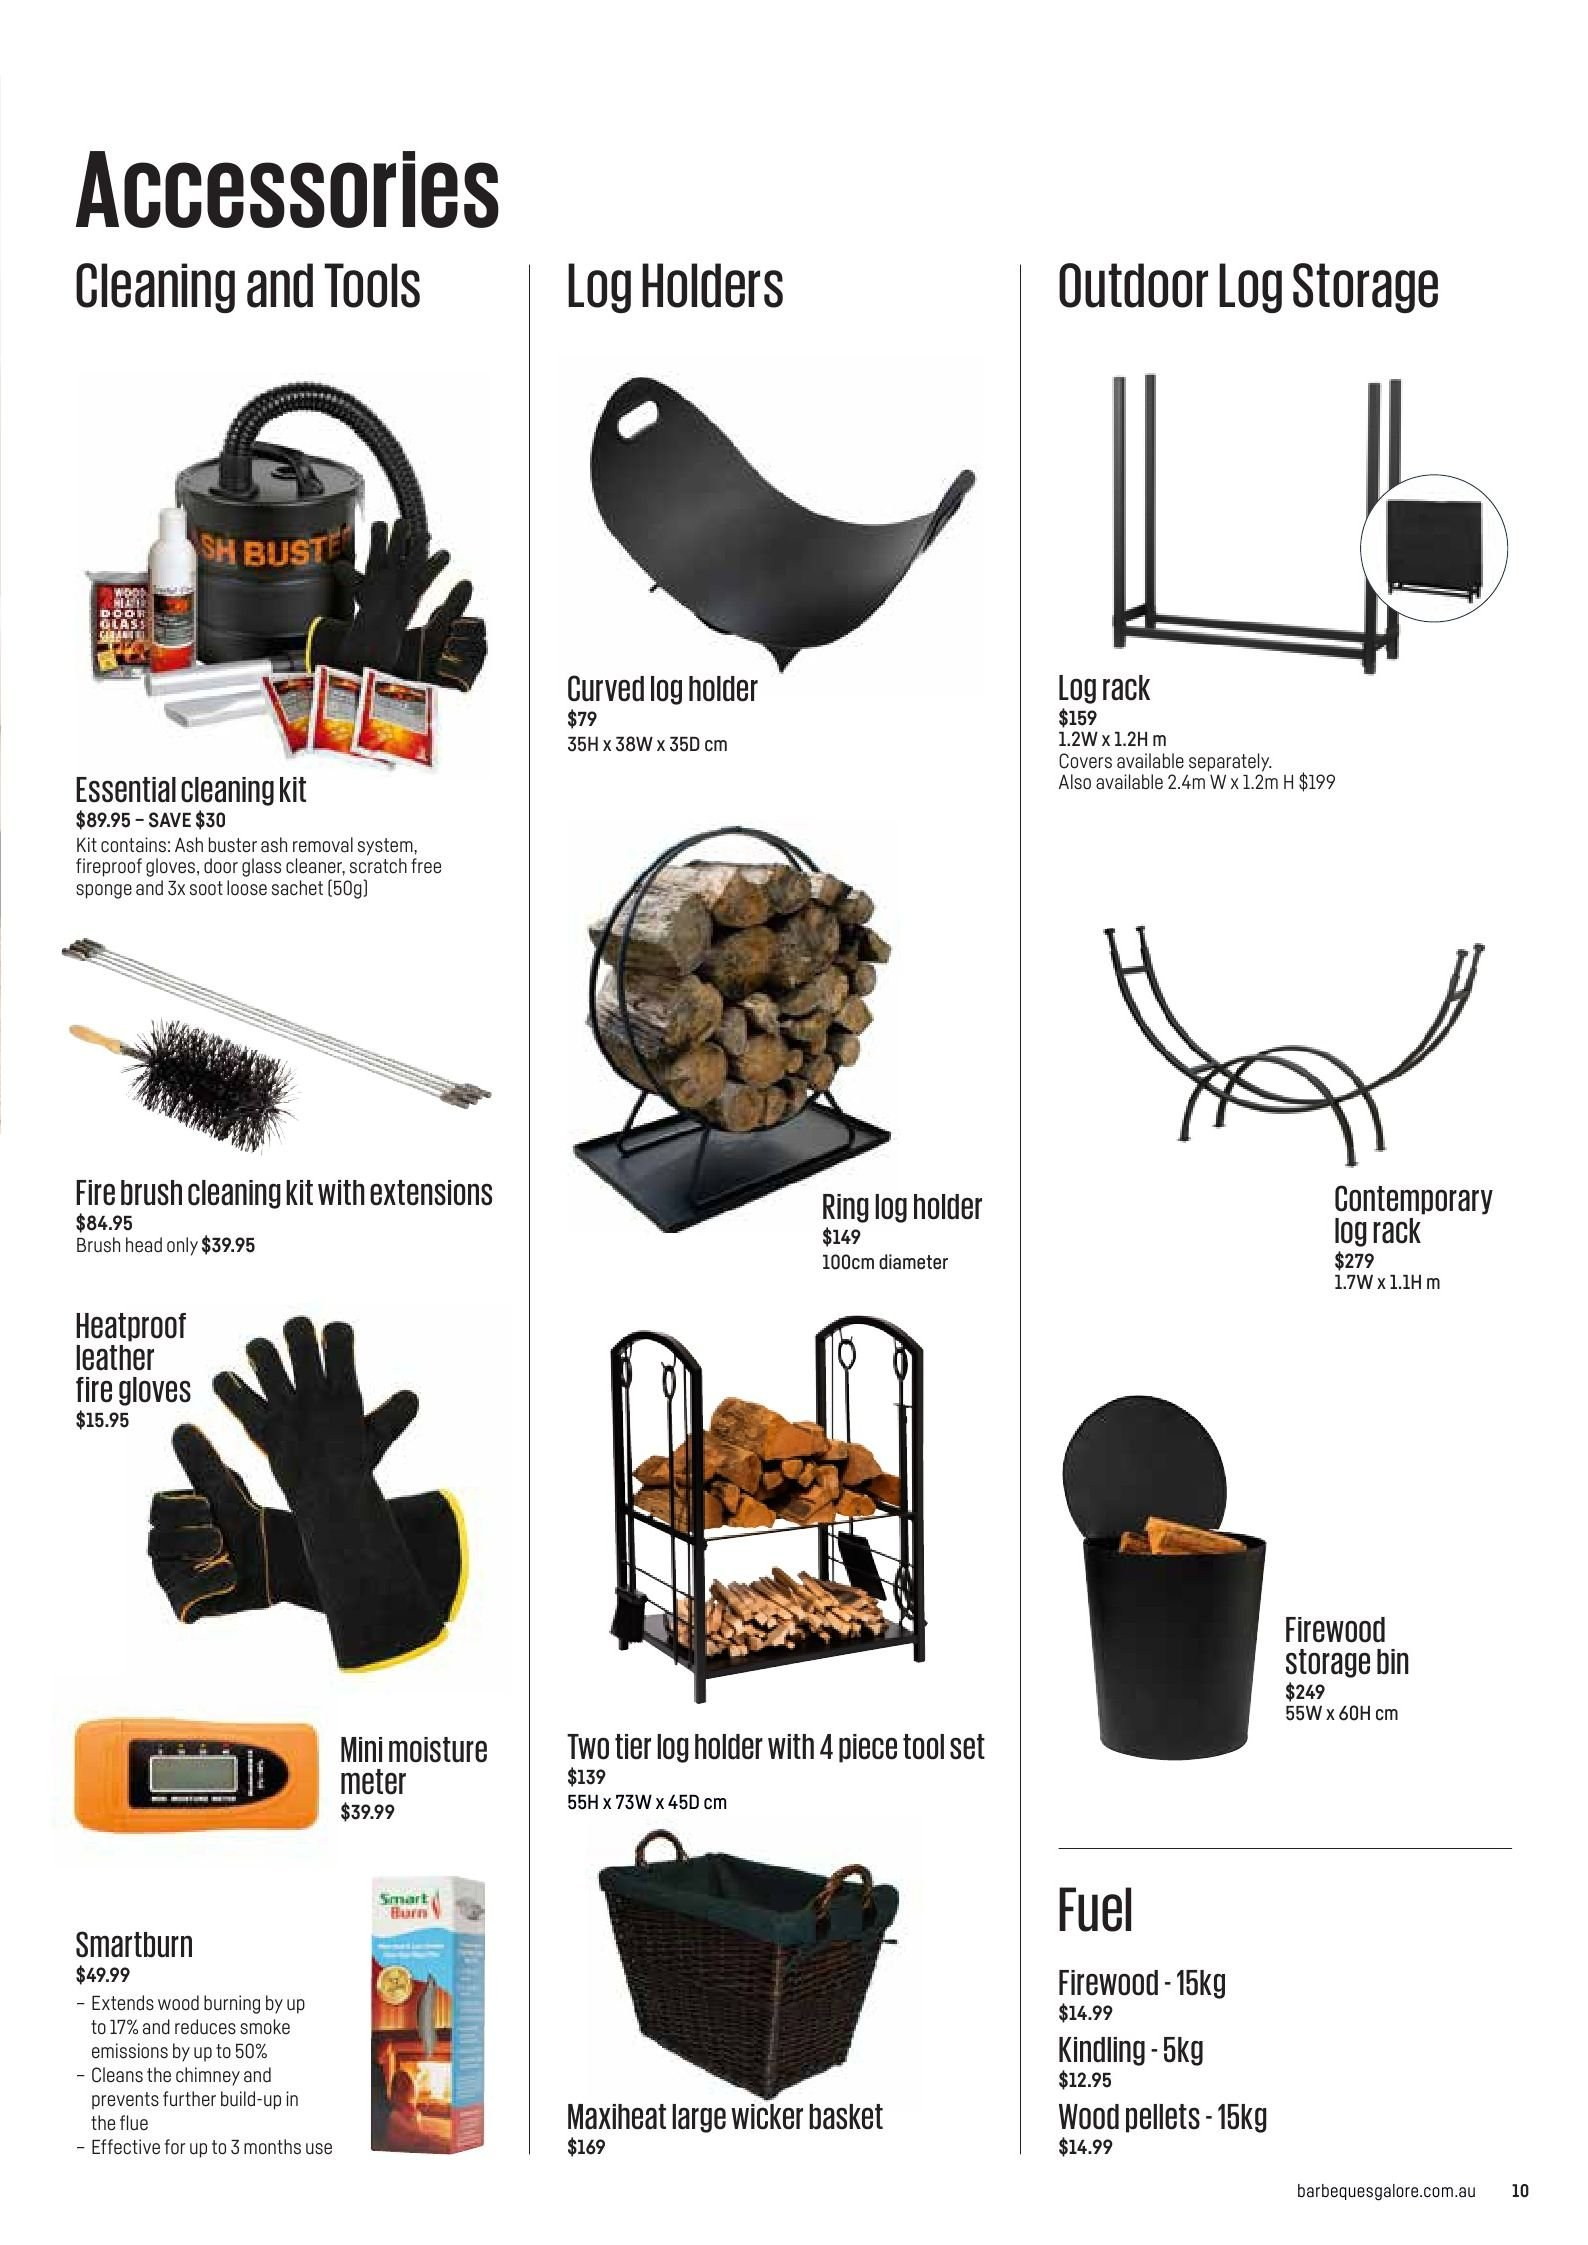 Barbeques galore catalogue sales products basket bin brush fuel gloves